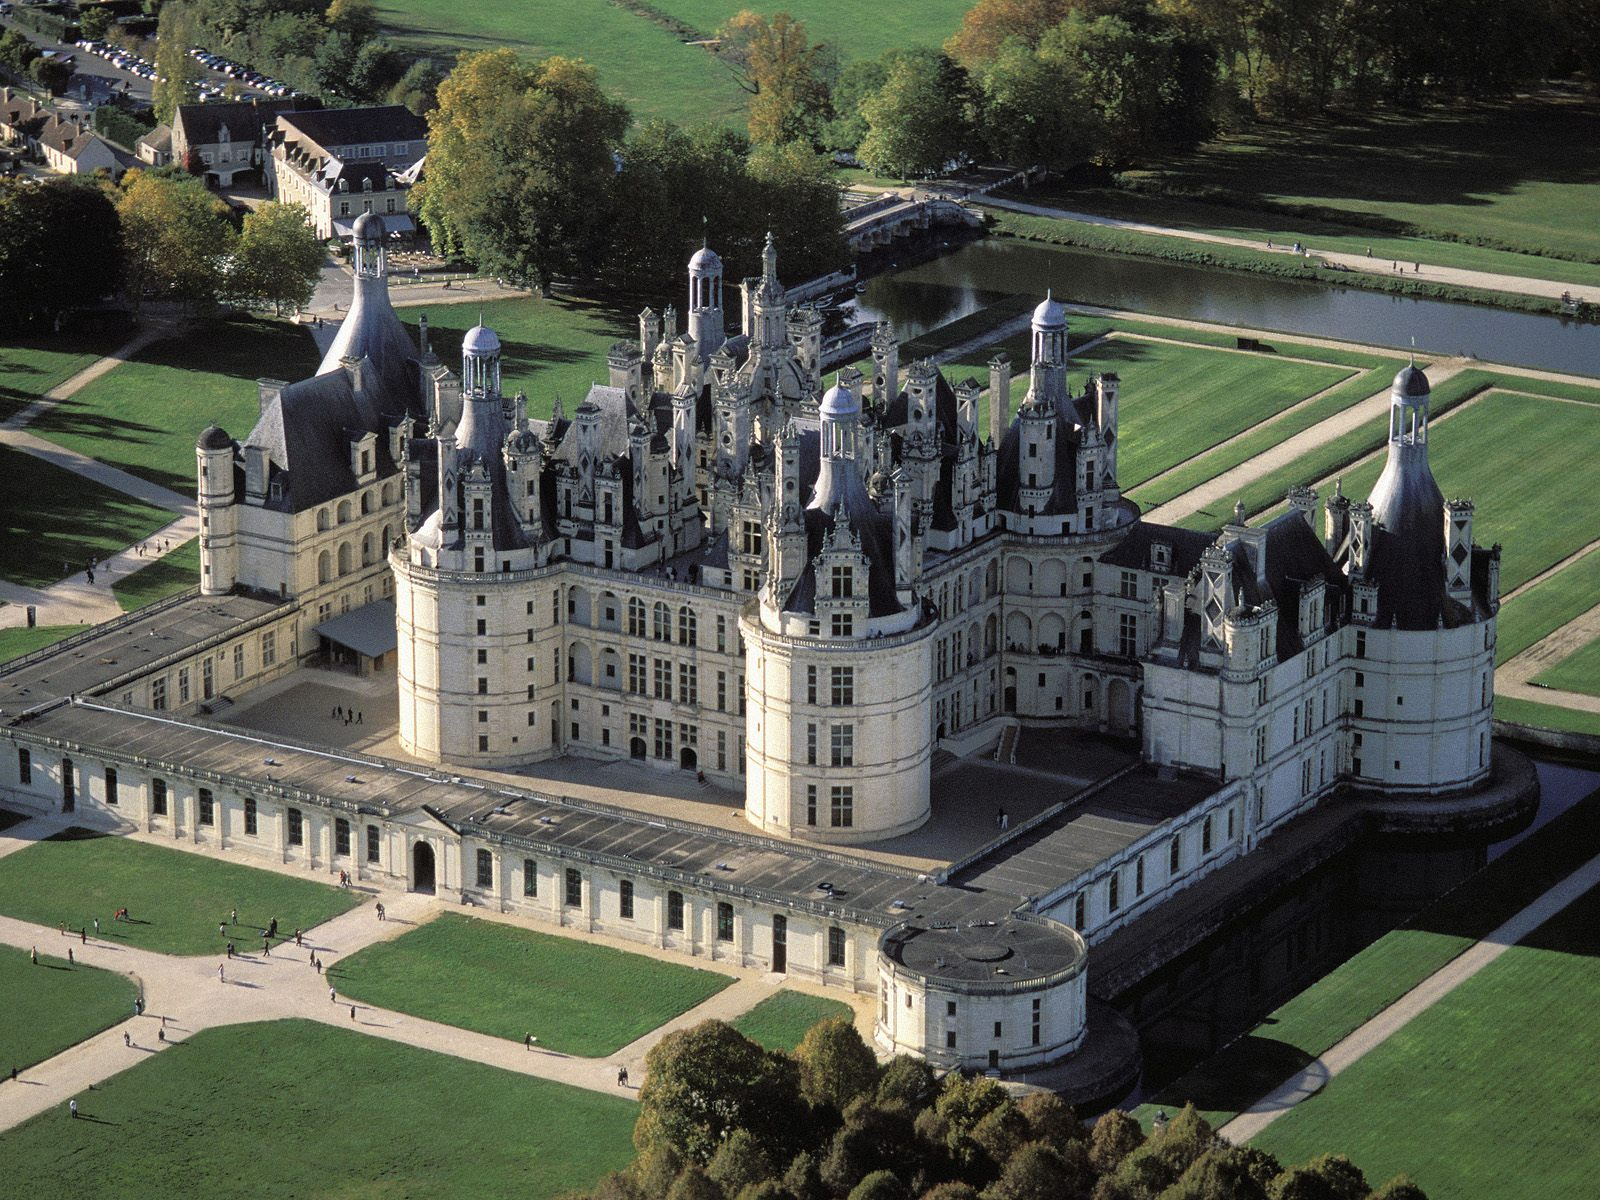 Copy of Chambord Castle in The Loire Valley, France